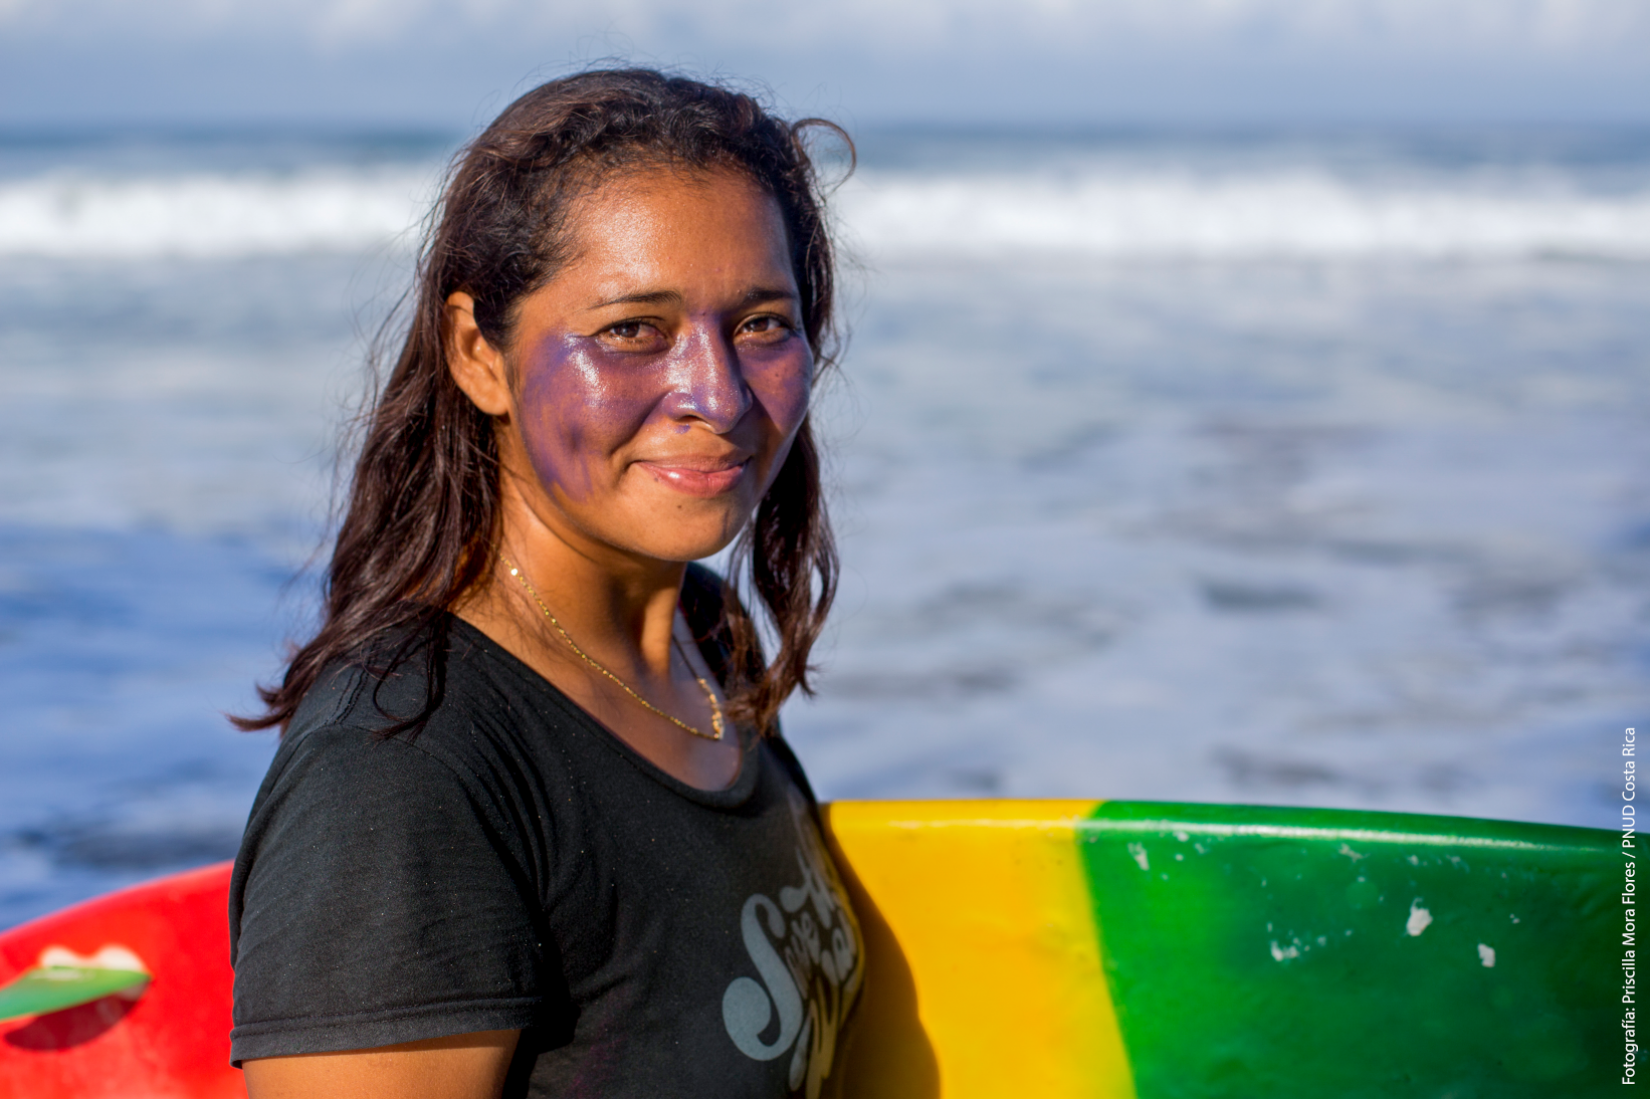 A female surfer smiles as she holds her surfboard by the shore of a beach.